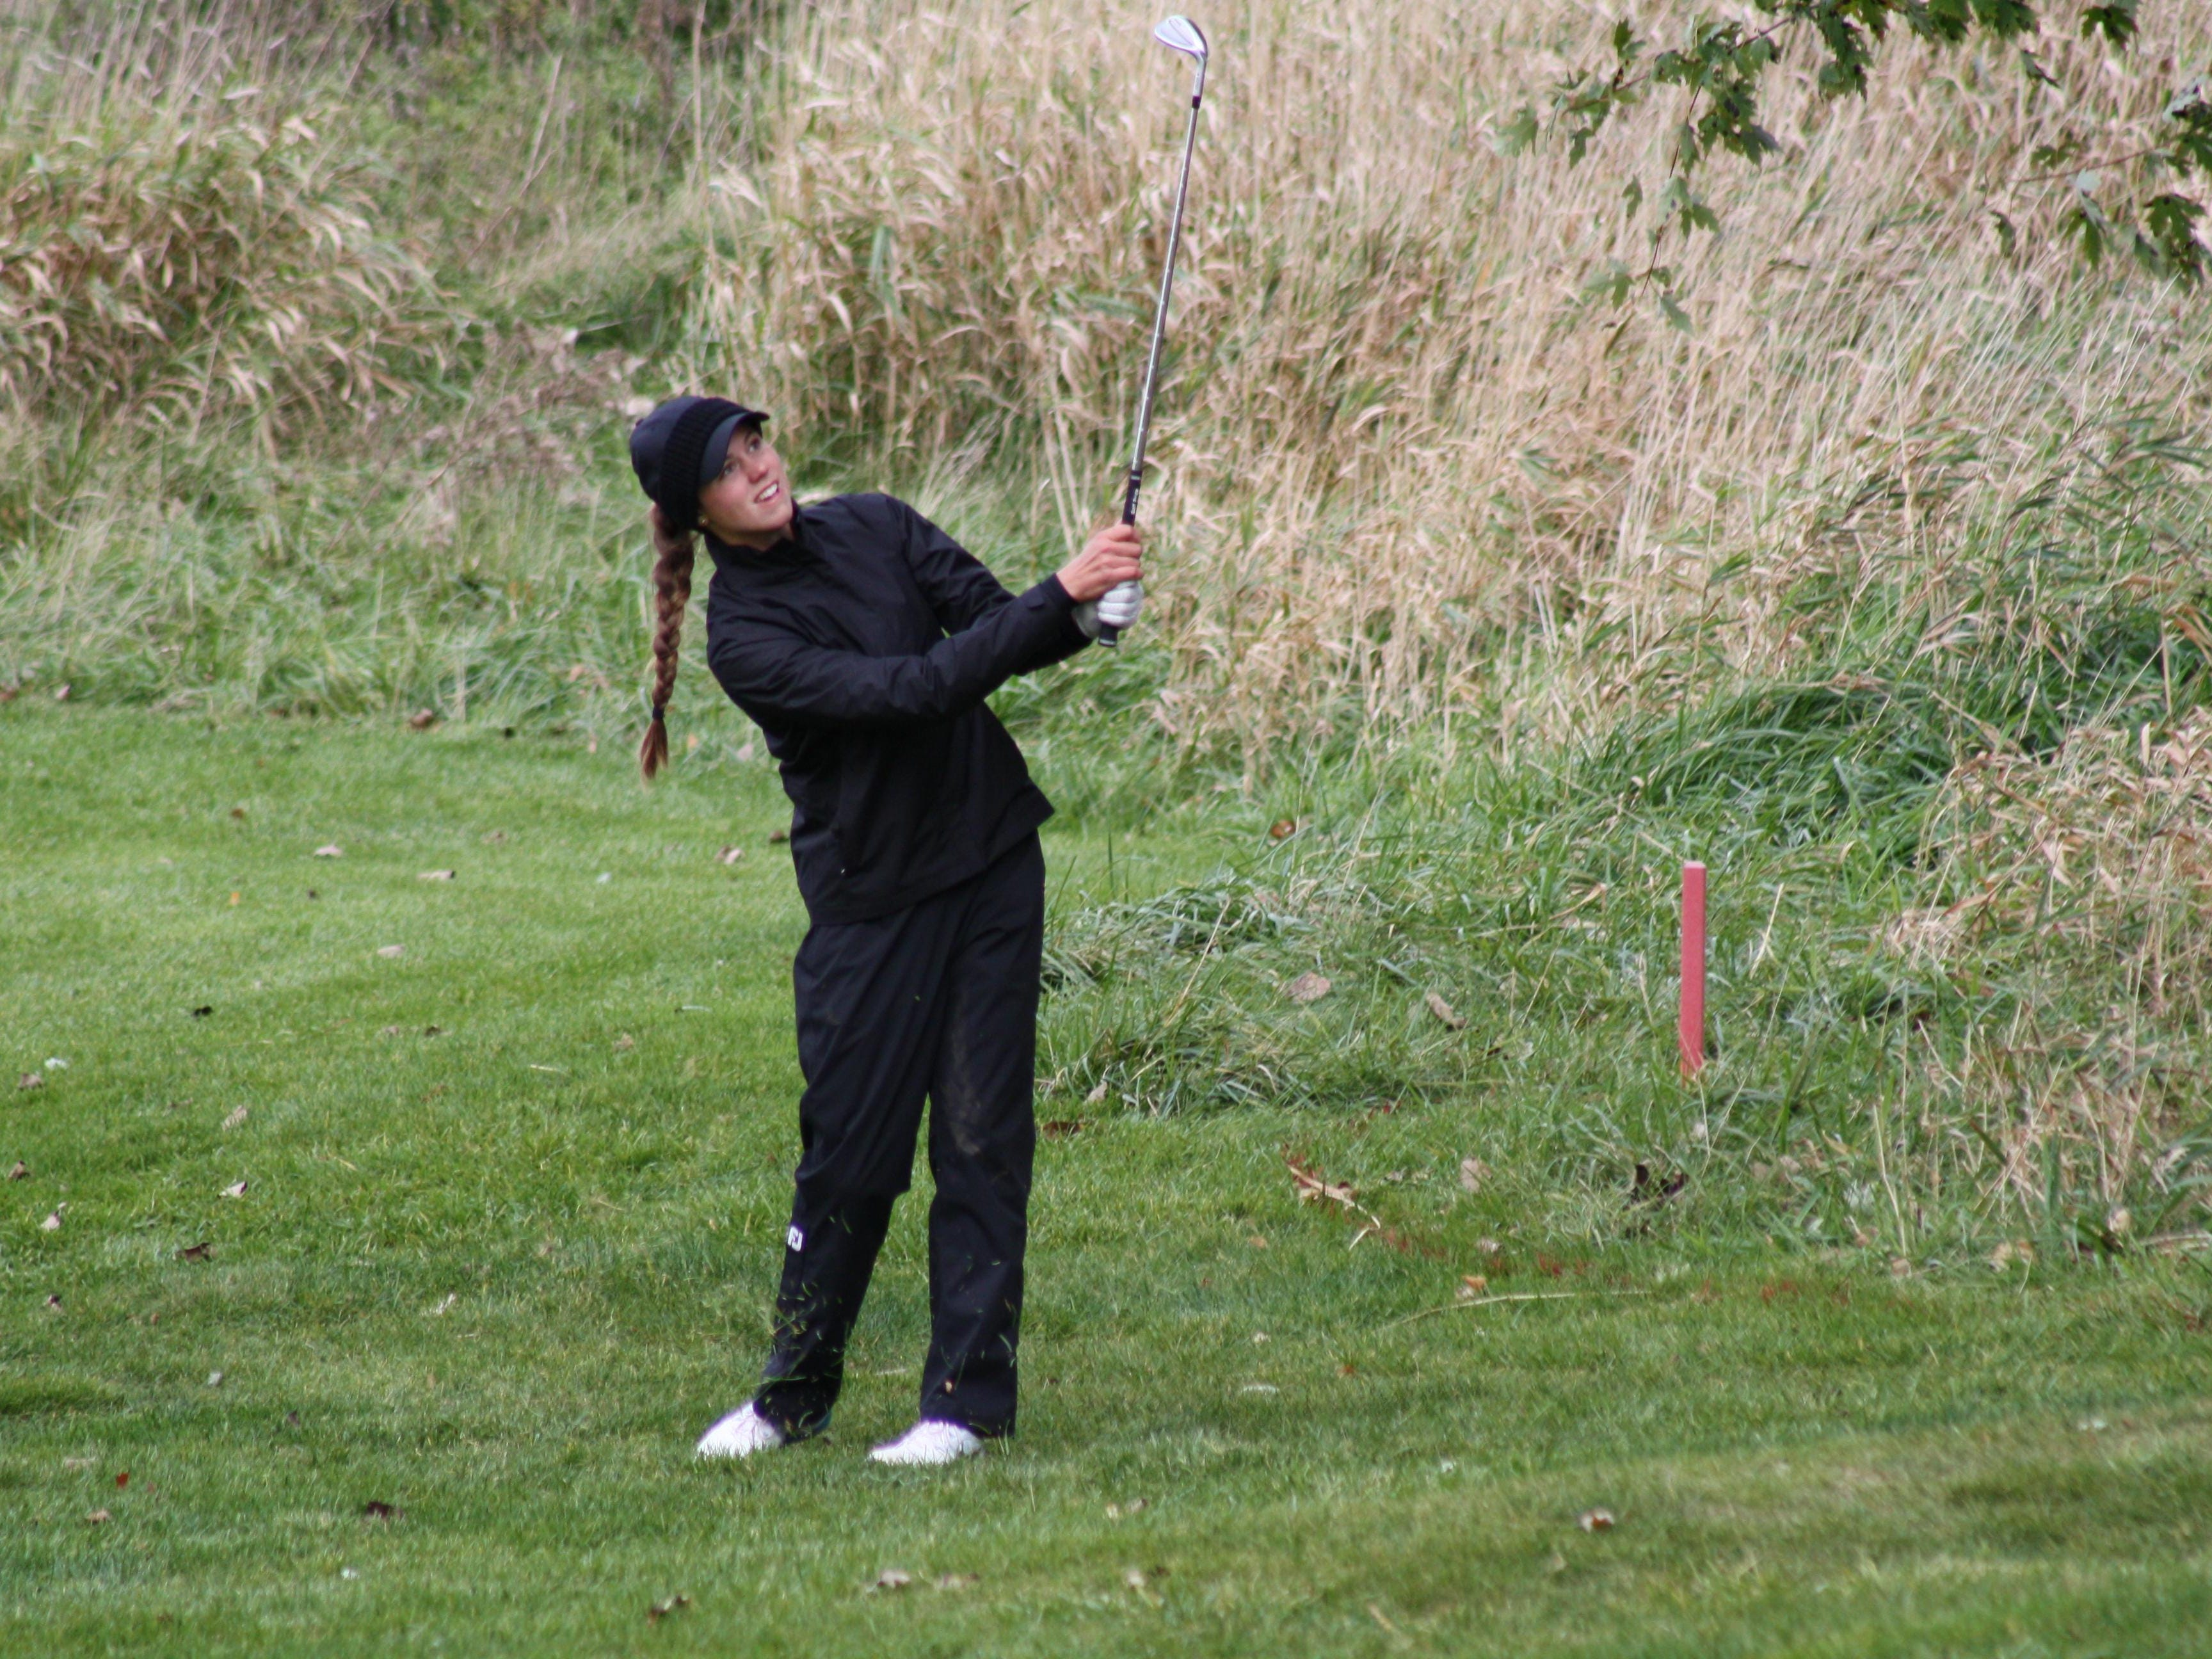 Brighton's Julia Dean hits an approach shot on No. 9 Saturday at Grand Valley's The Meadows. Dean shot 73 to win the individual title by one stroke.